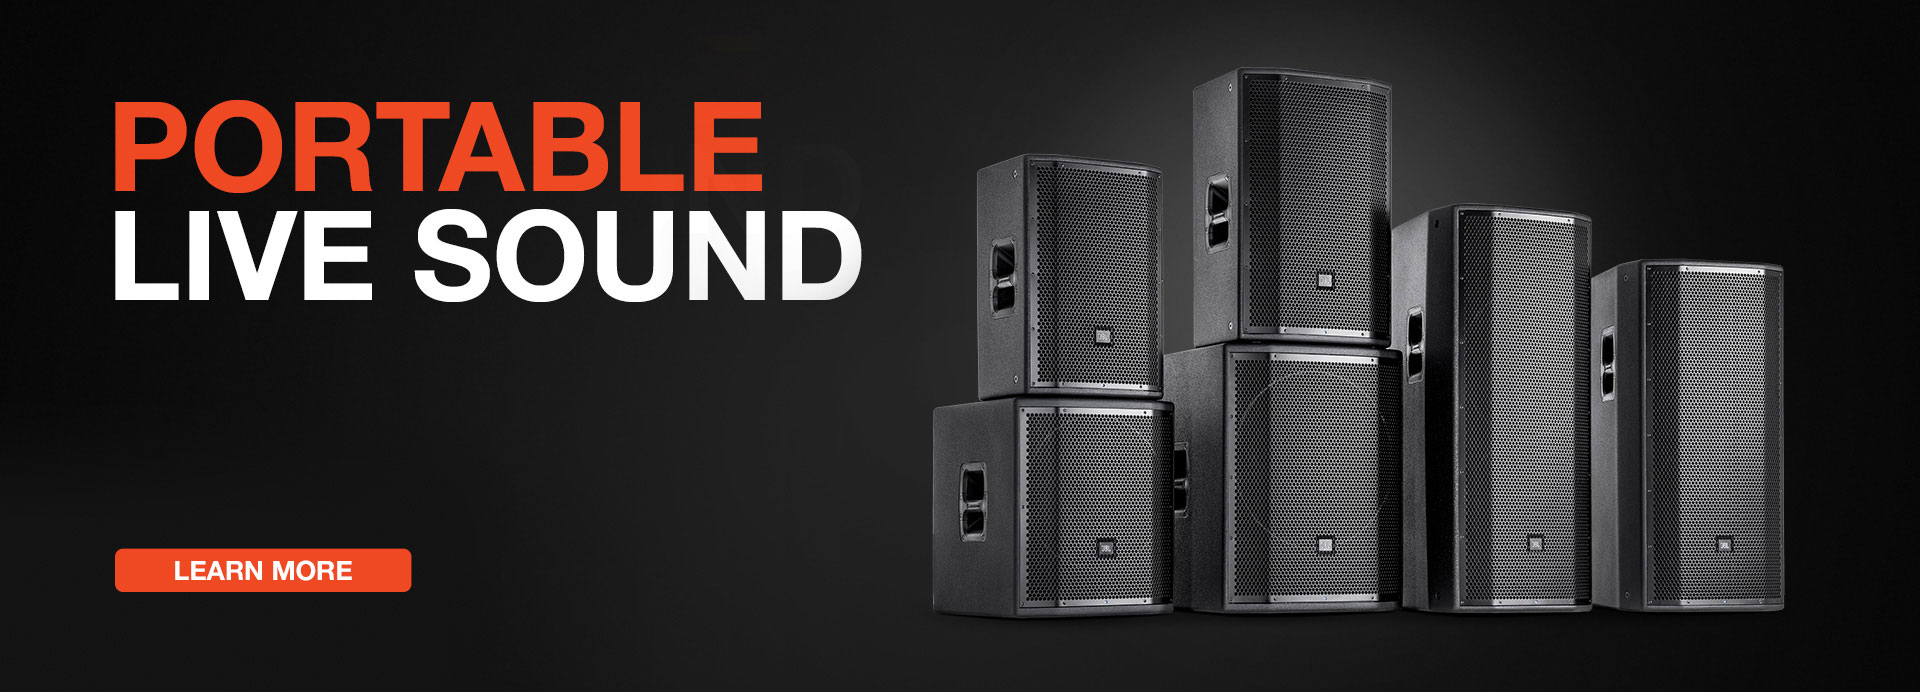 products_homepage_slide_portable_live_sound